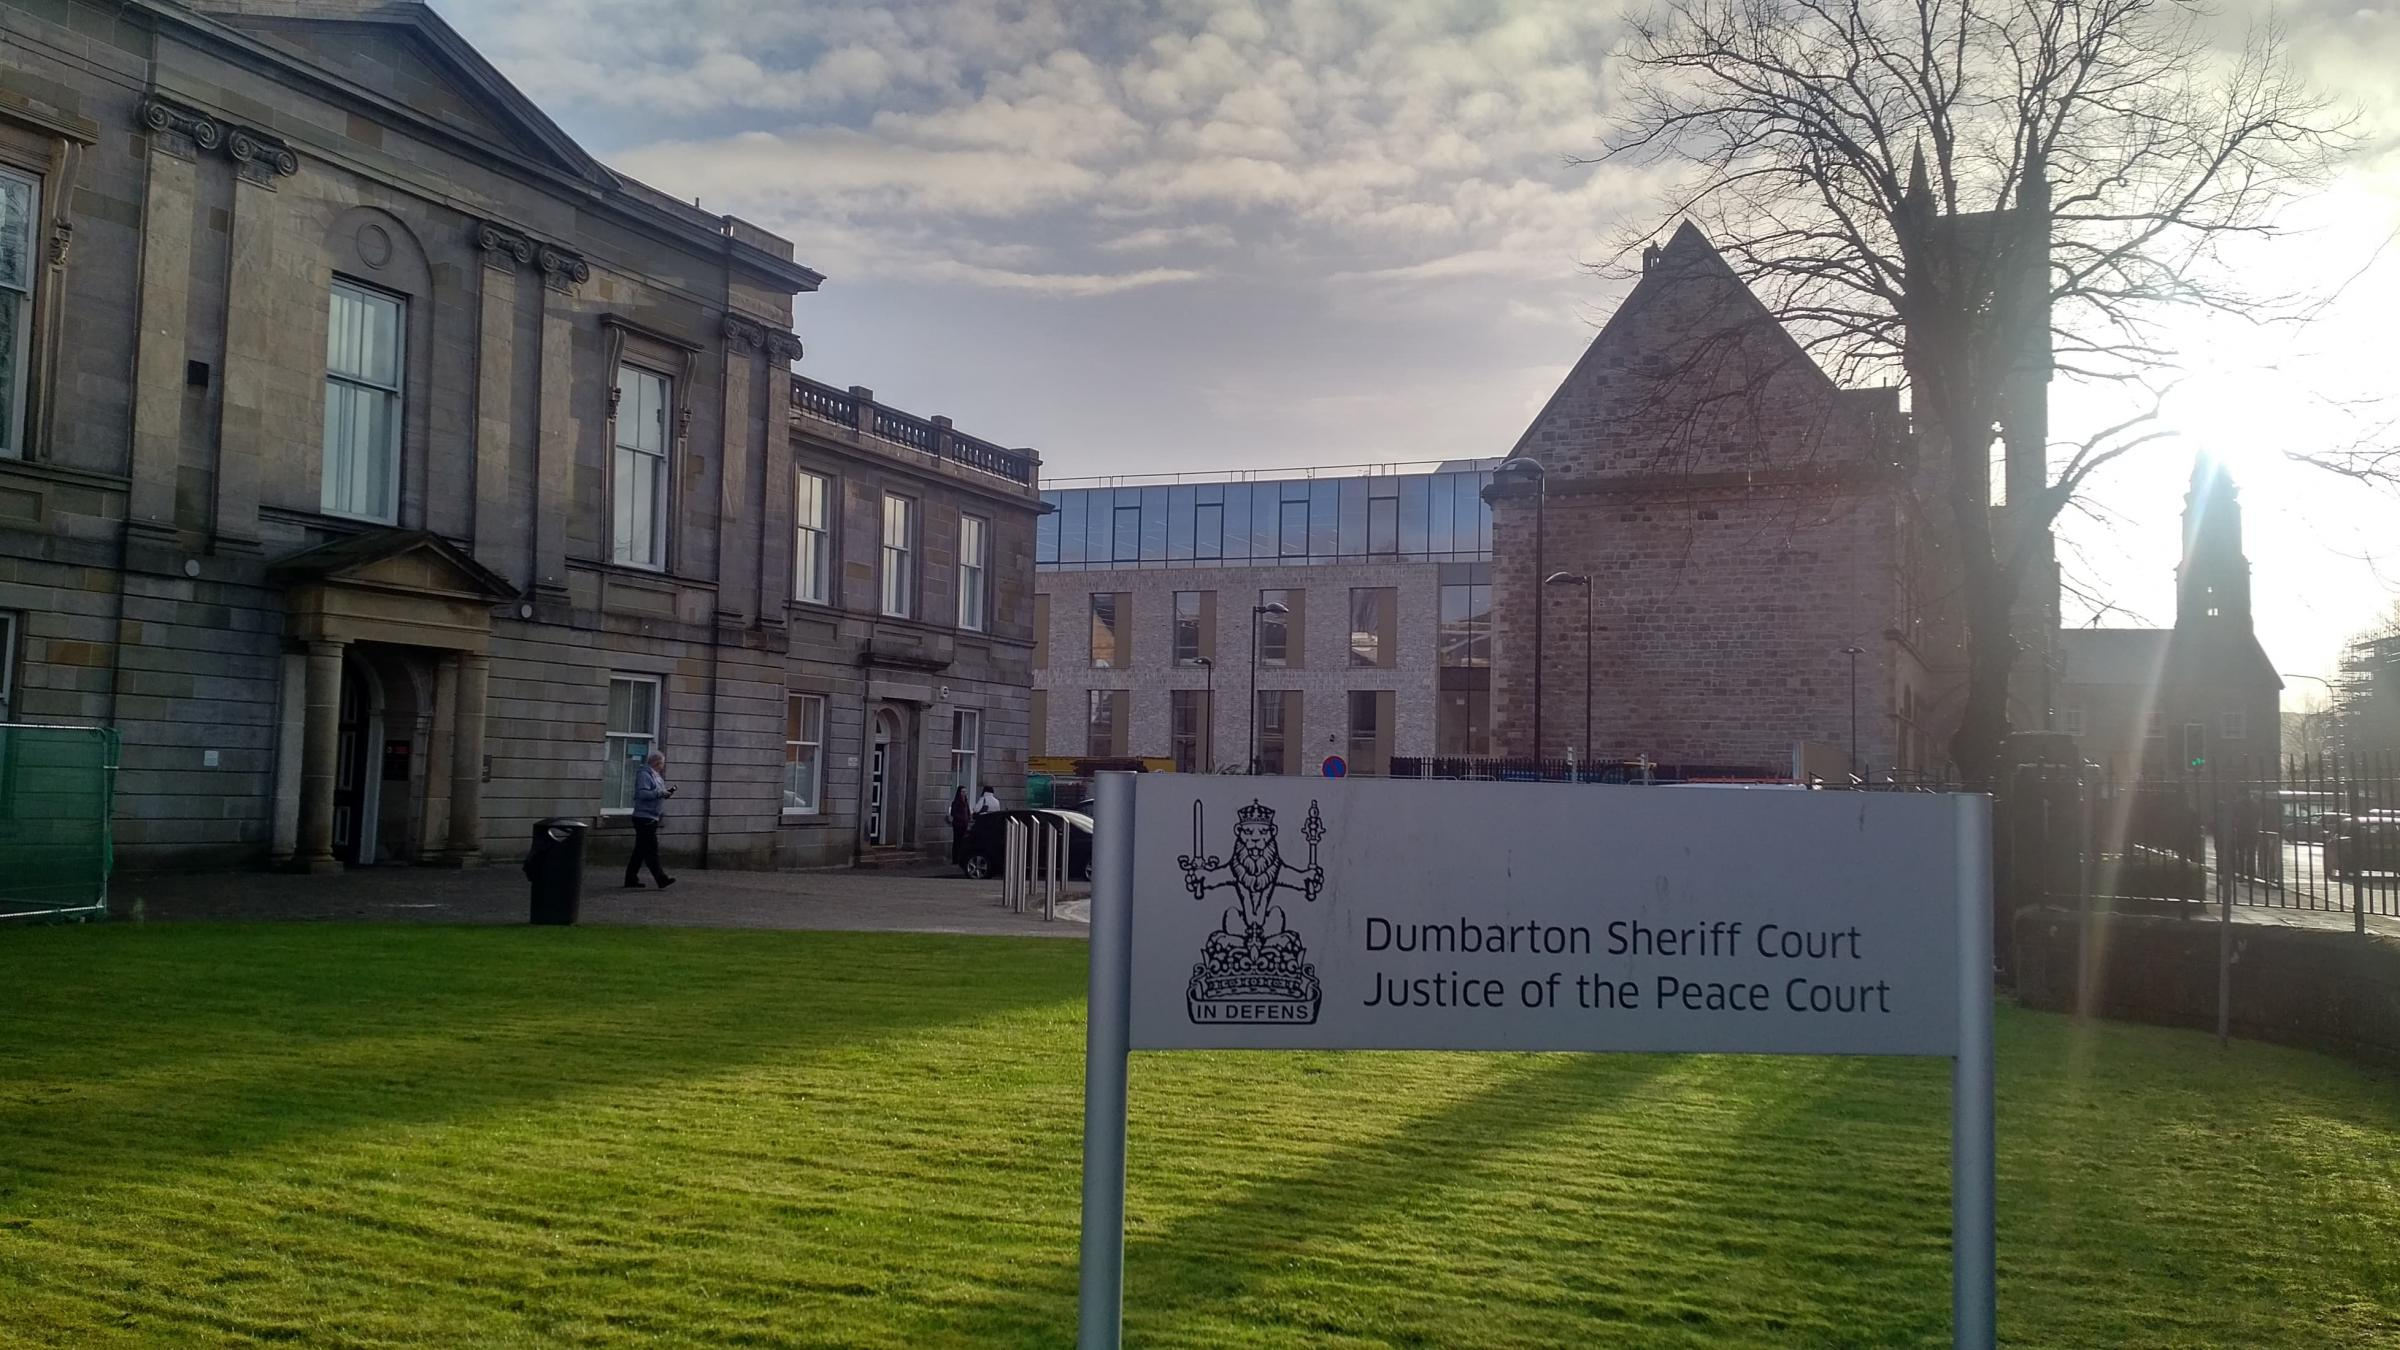 Dumbarton Sheriff Court, where Nathan Bailey appeared on January 7